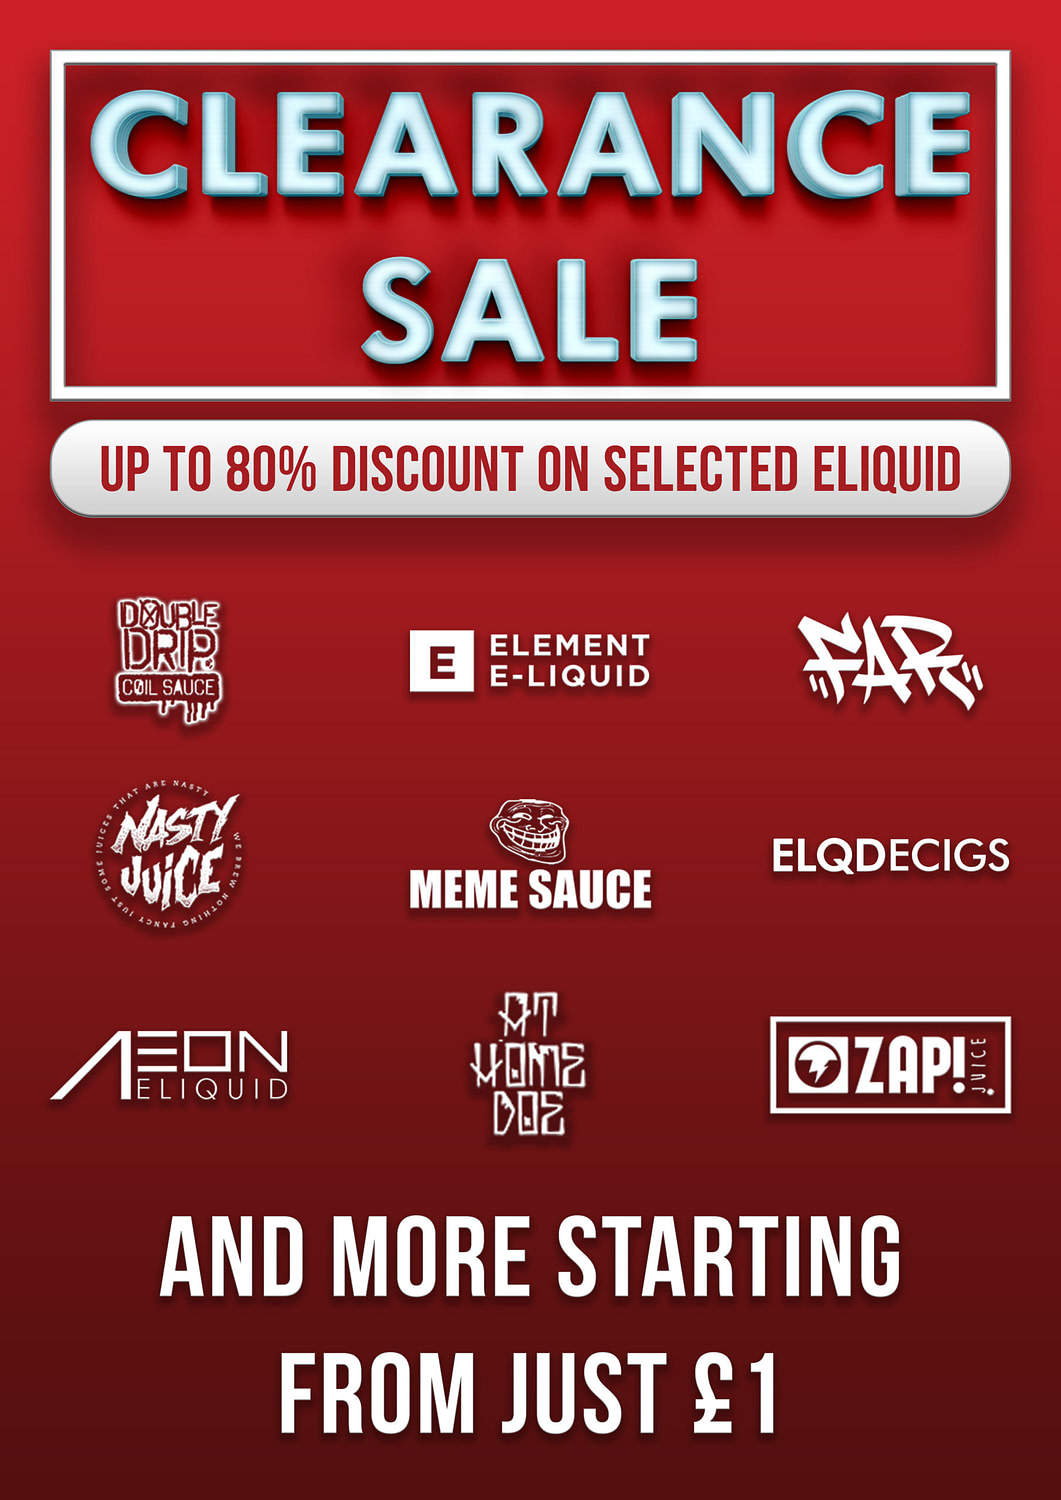 Eliquid Clearance Sale! Bottles from £1